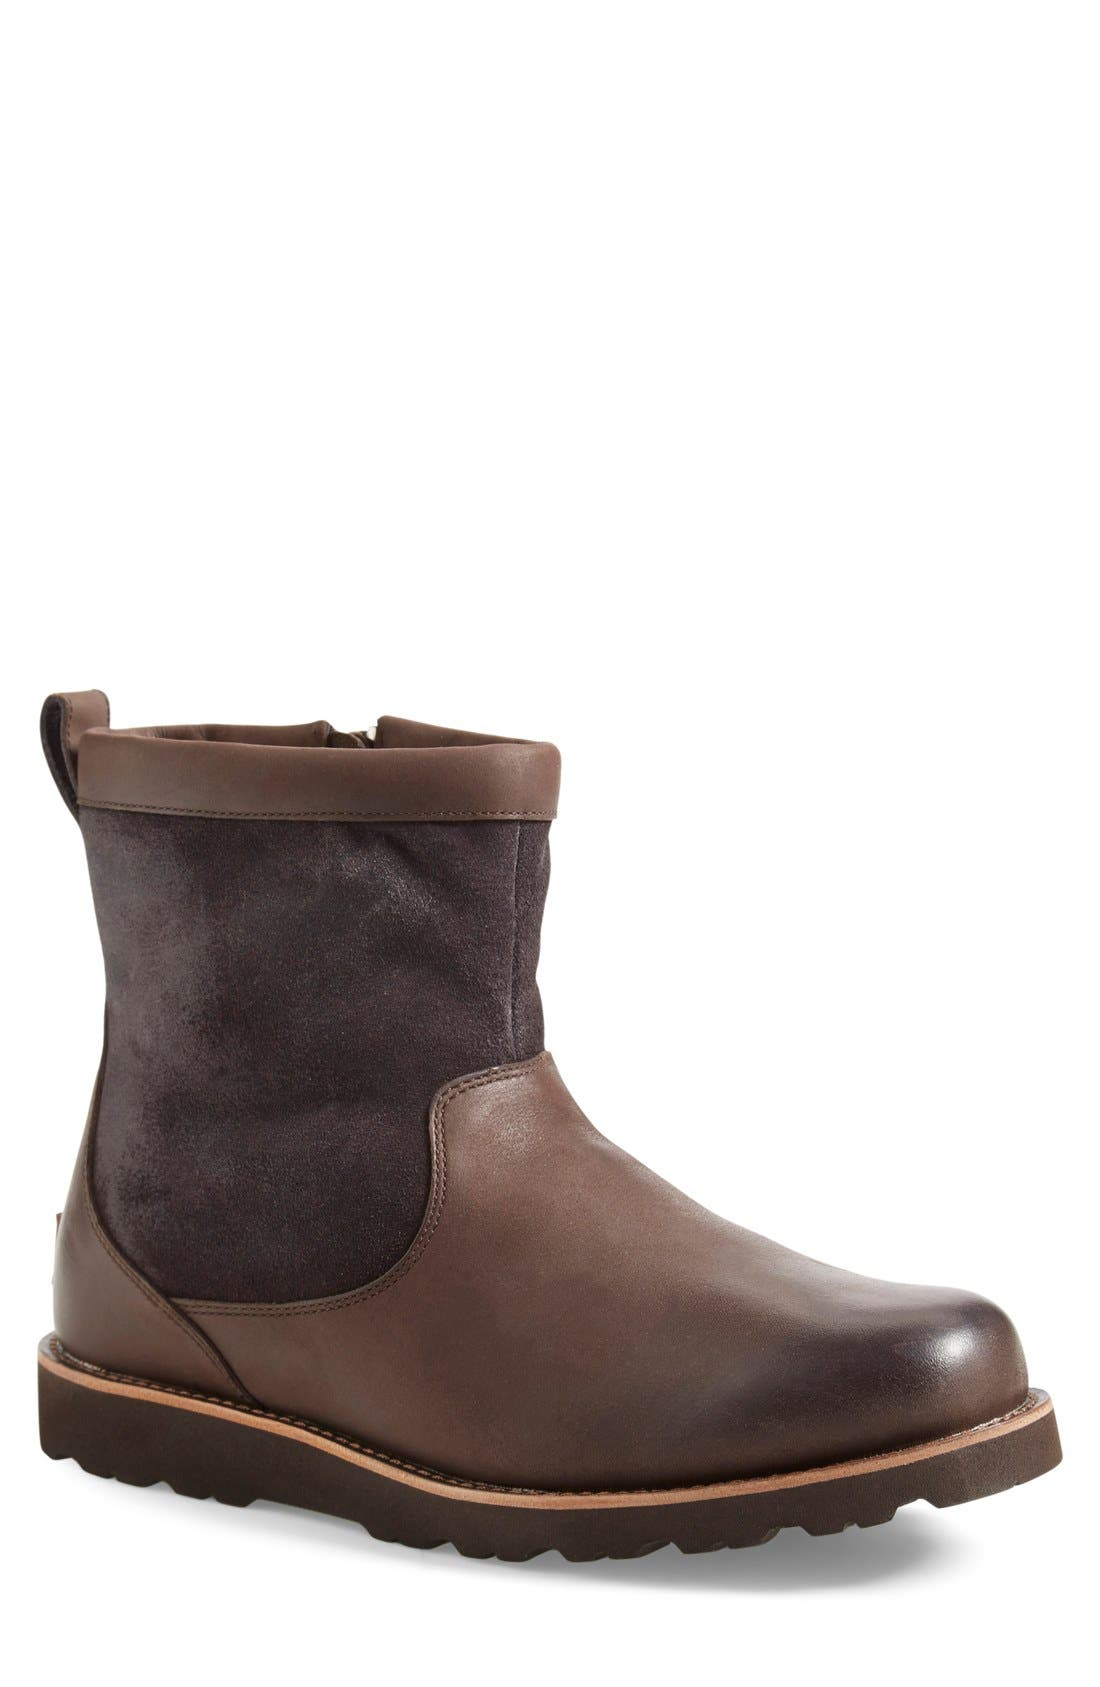 Alternate Image 1 Selected - UGG® Hendren TL Waterproof Zip Boot (Men)